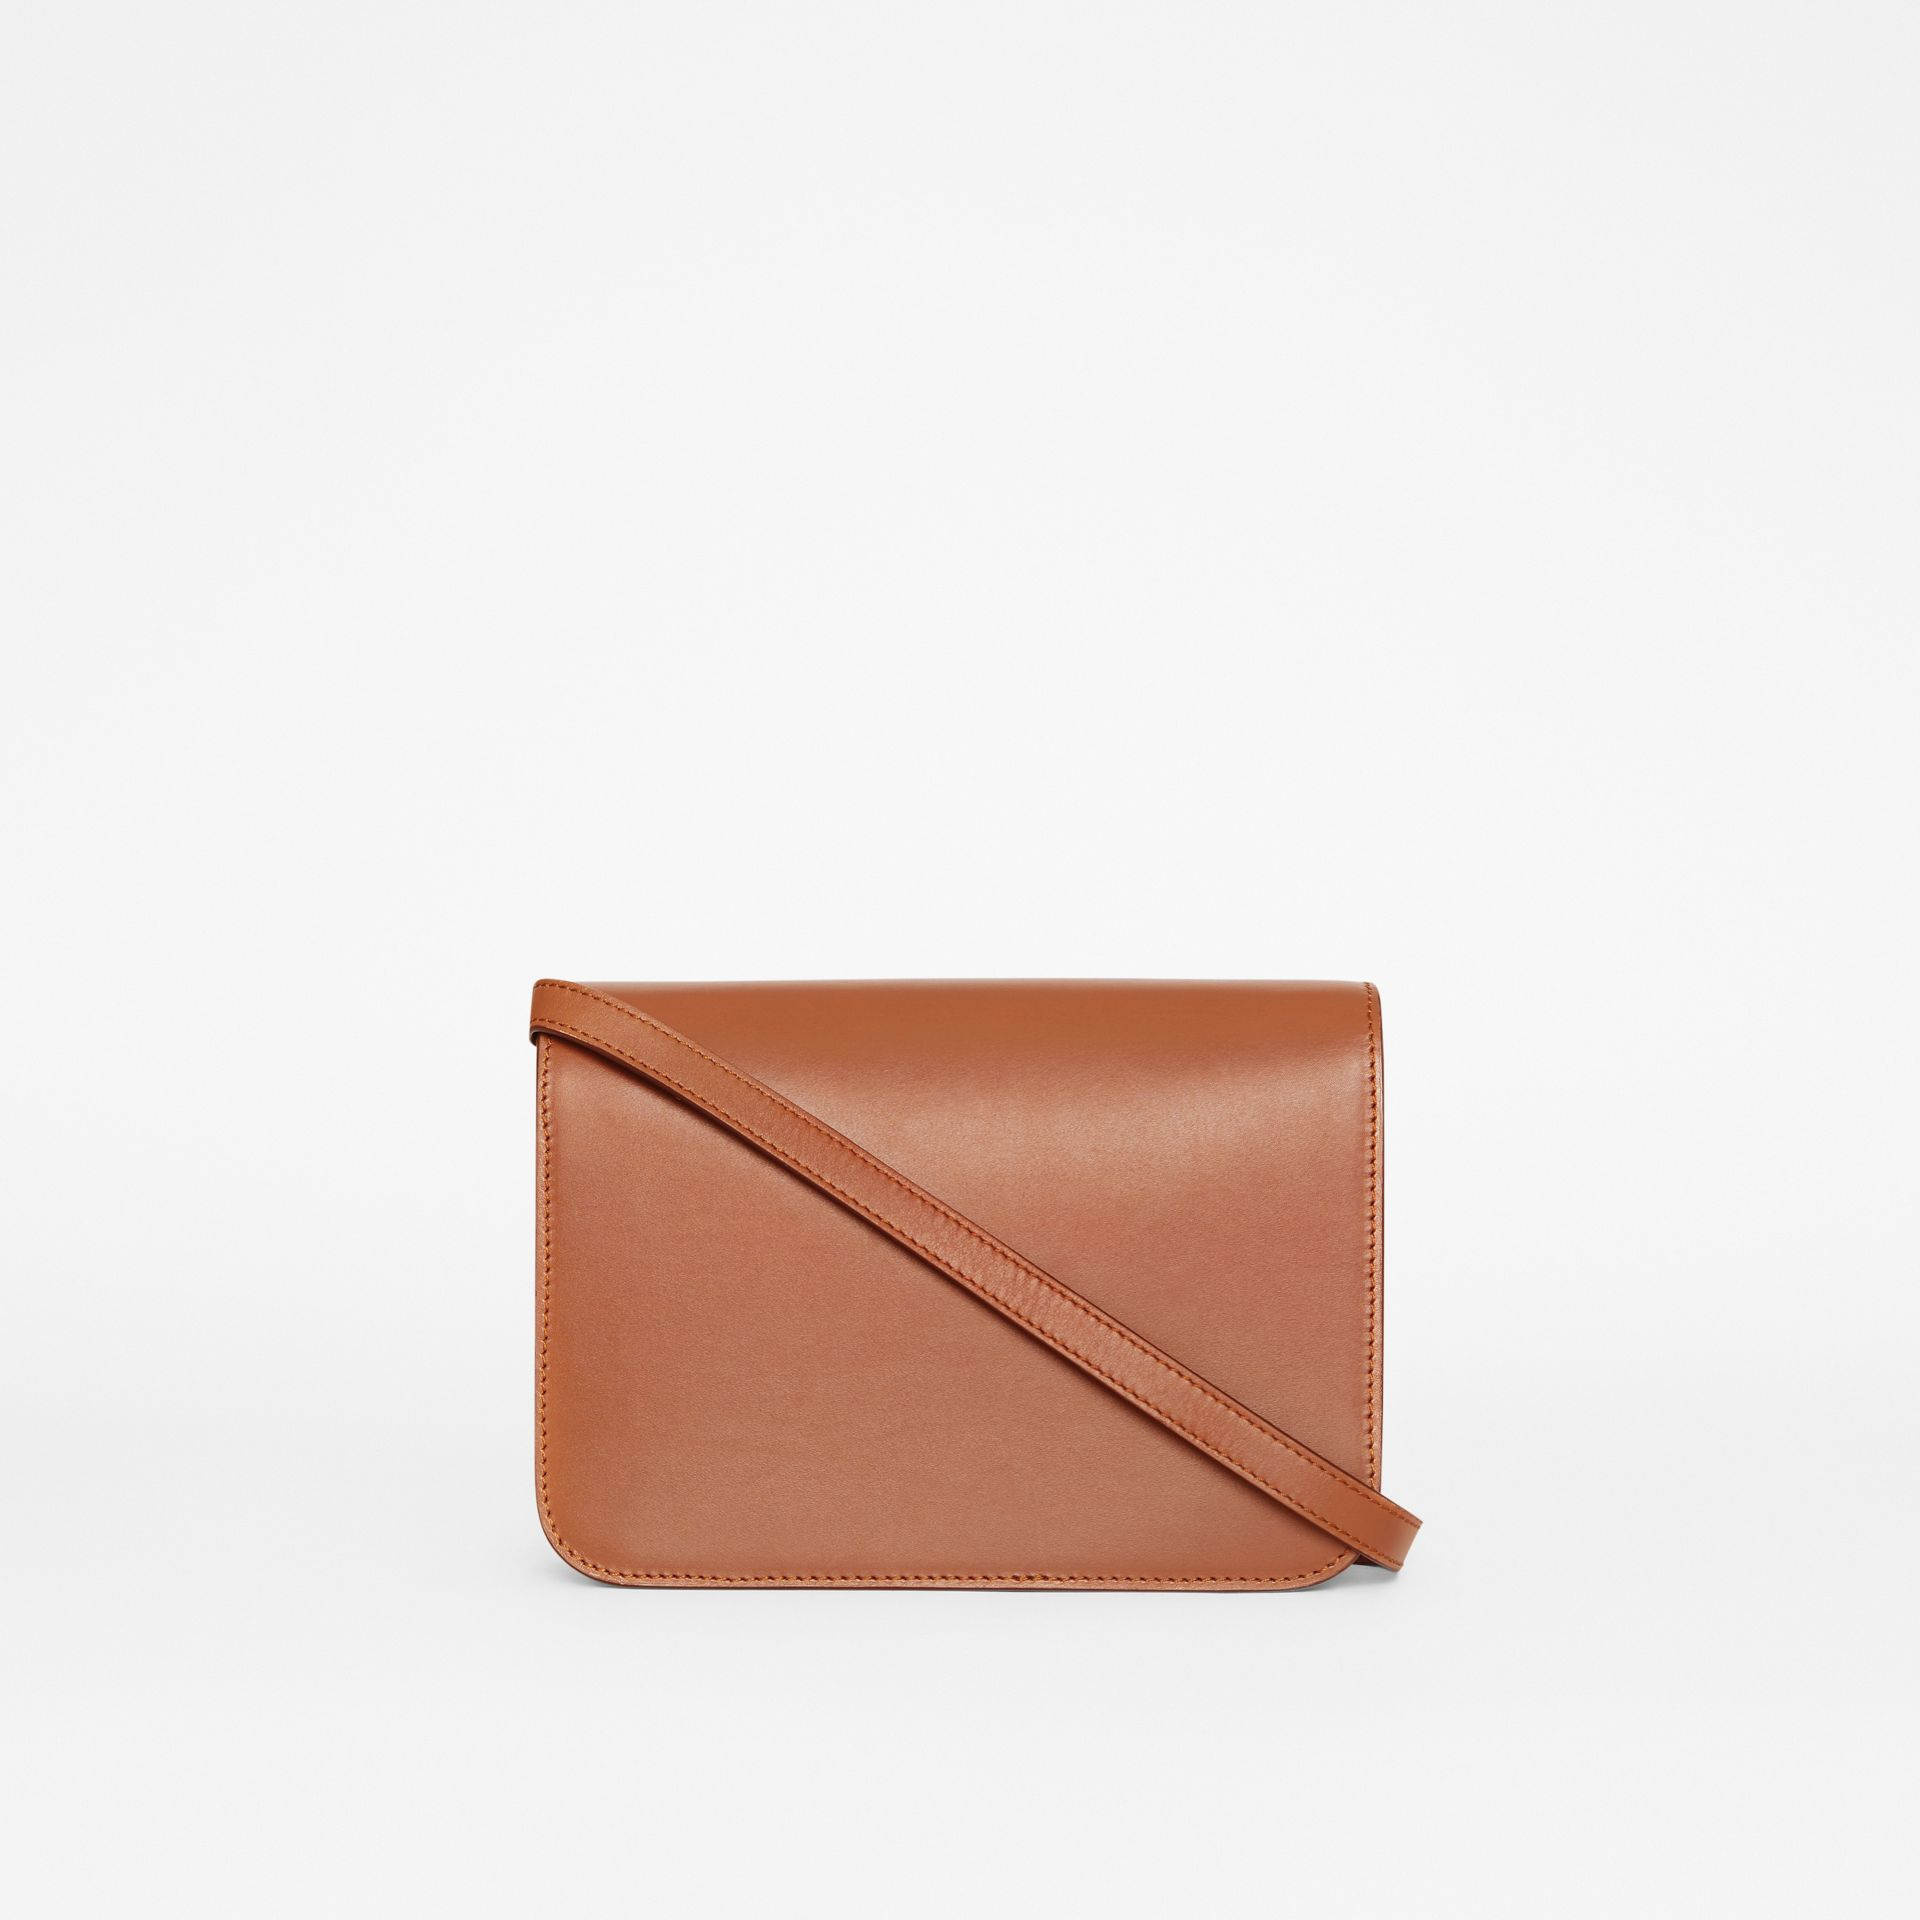 Small Leather TB Bag in Malt Brown - Women | Burberry Canada - gallery image 7